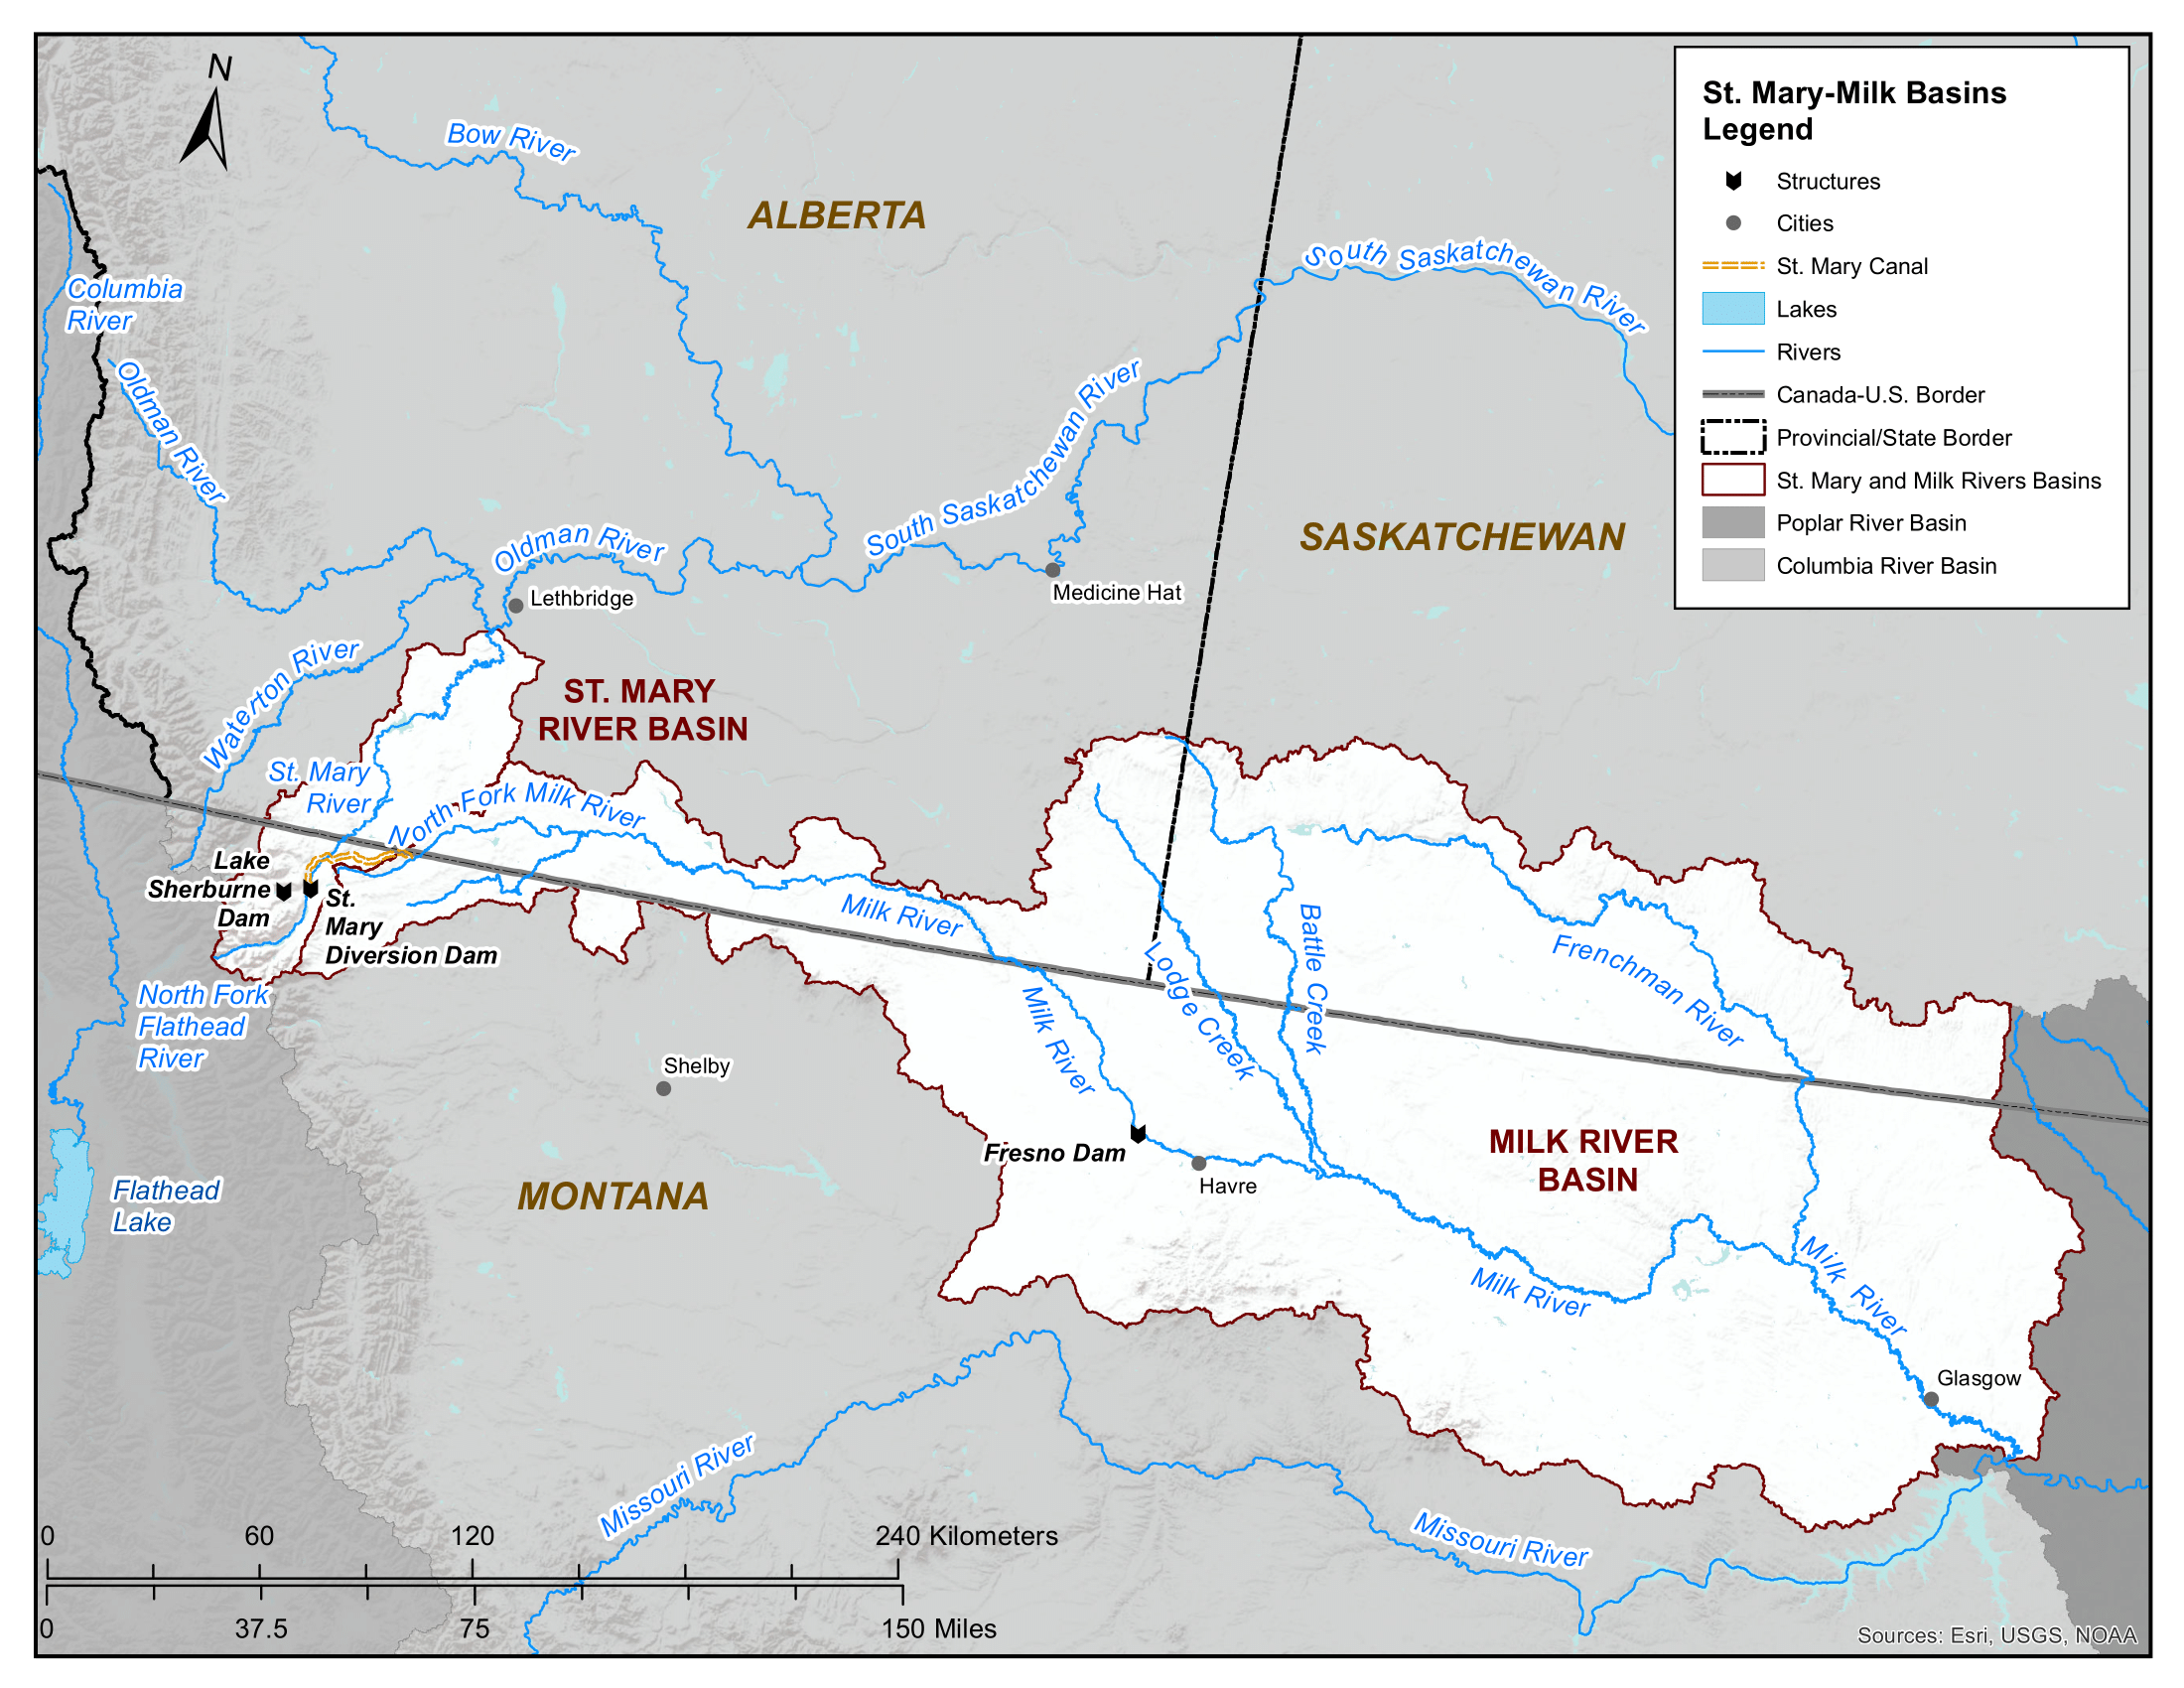 Map - St. Mary and Milk River Basins